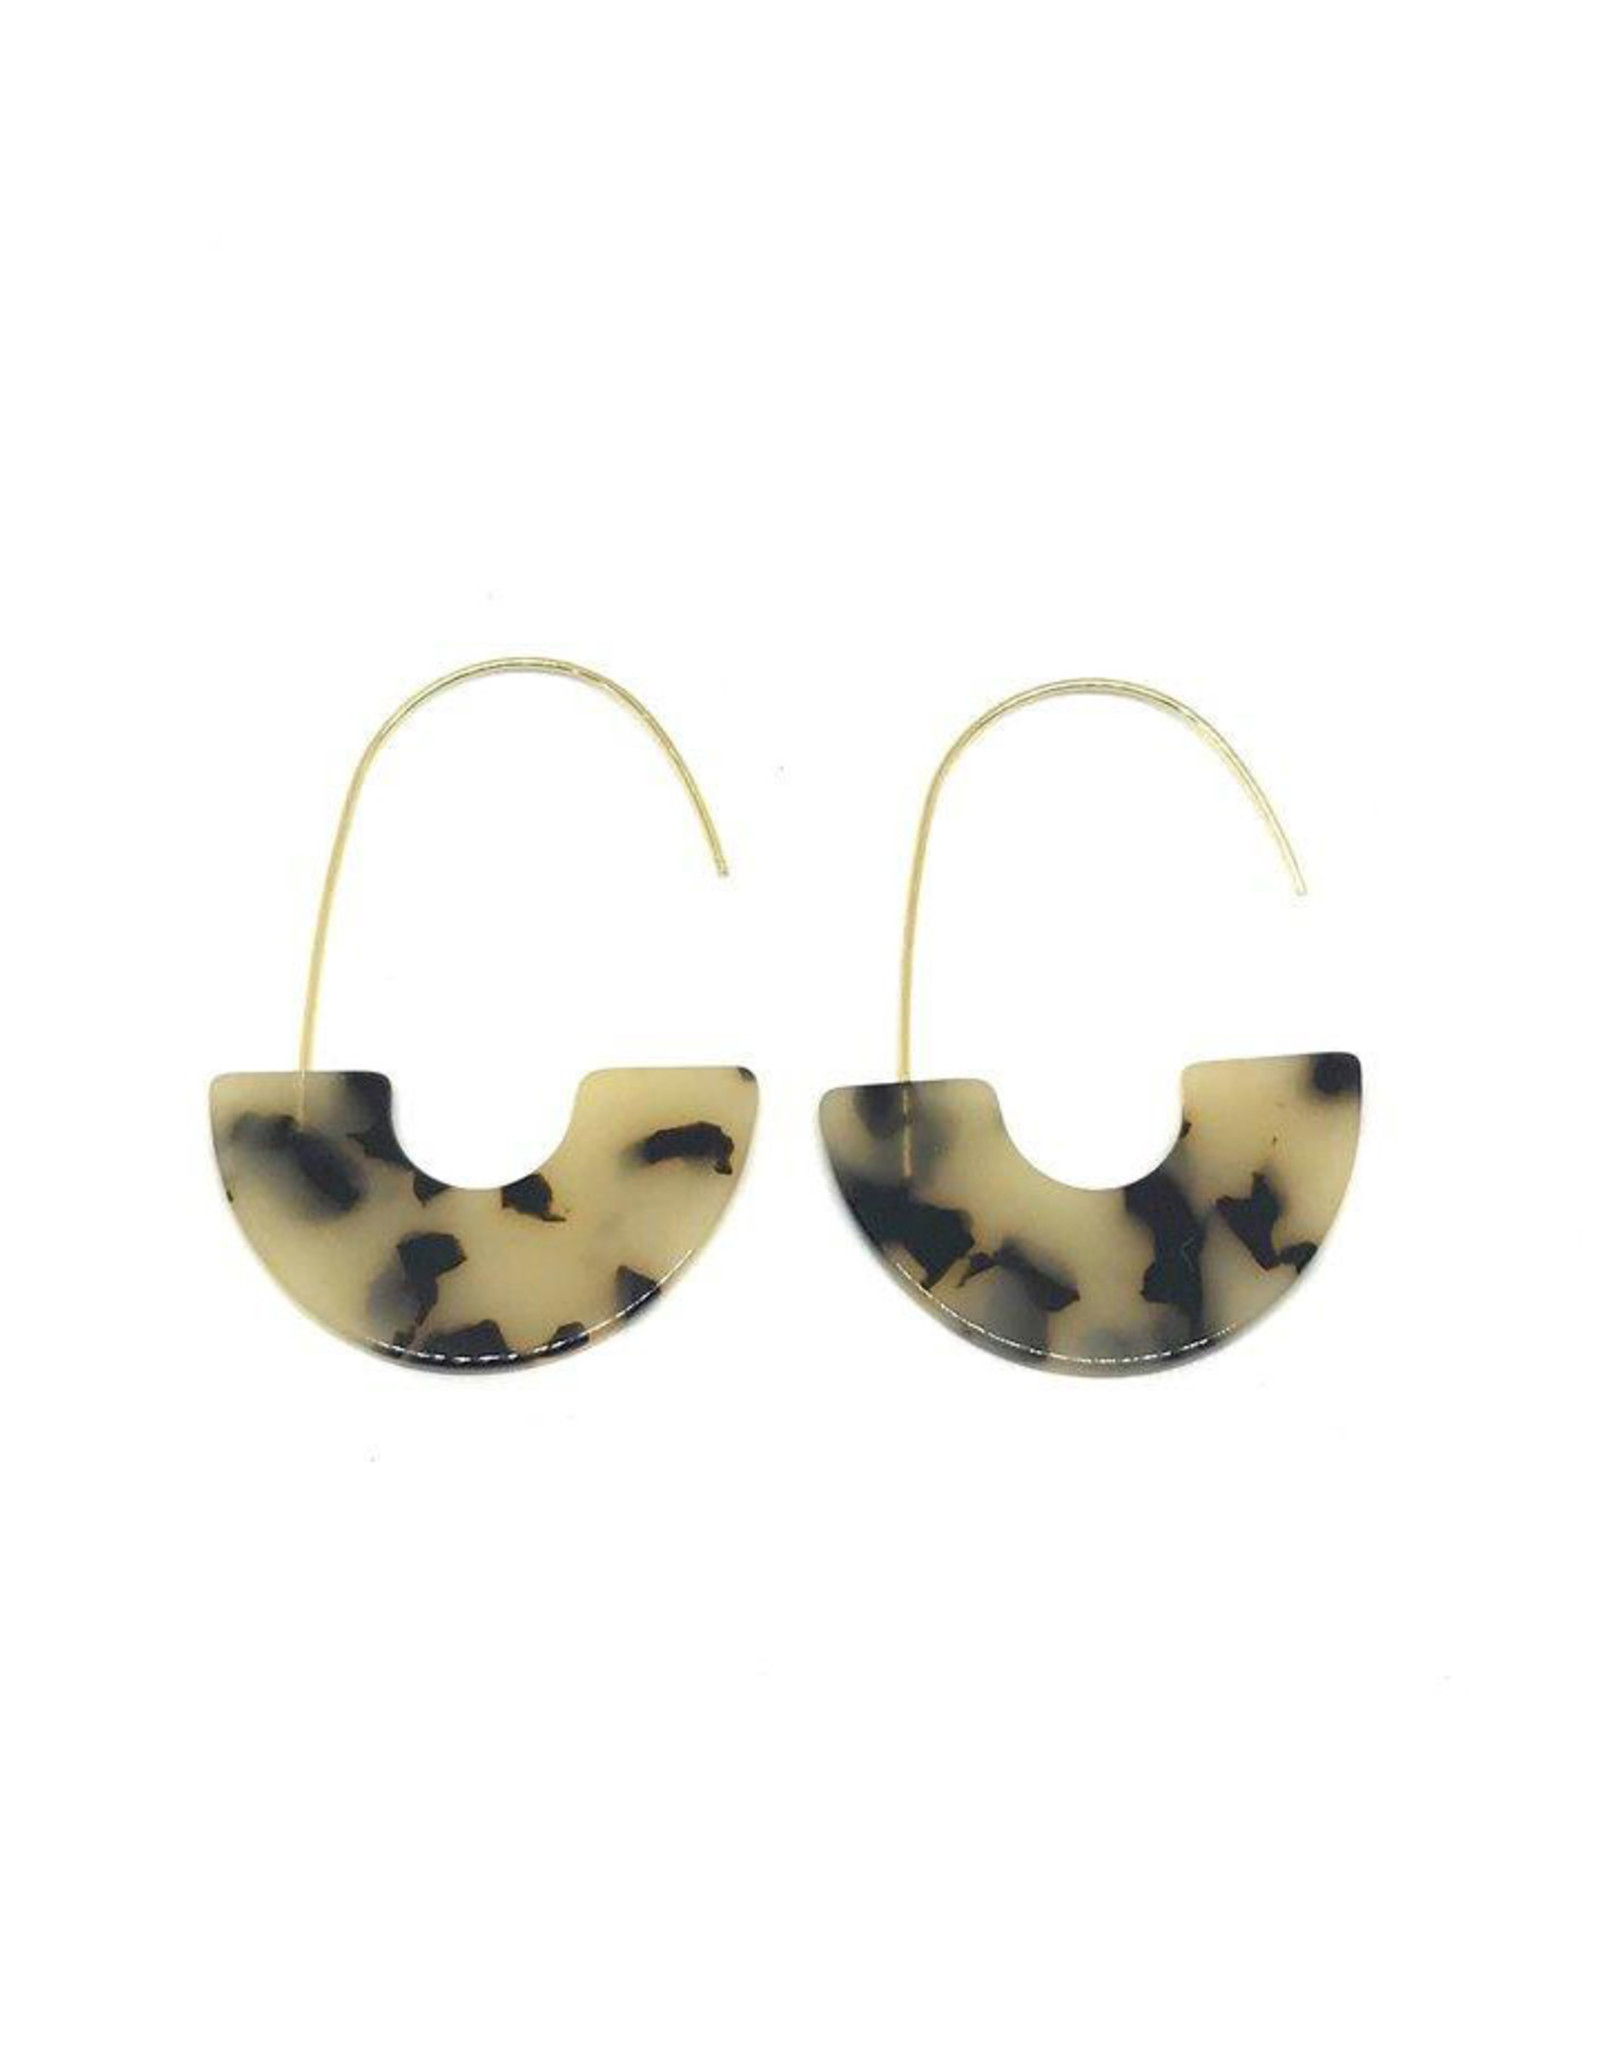 Vayu Jewels Zeta Earrings - Tortoise Shell